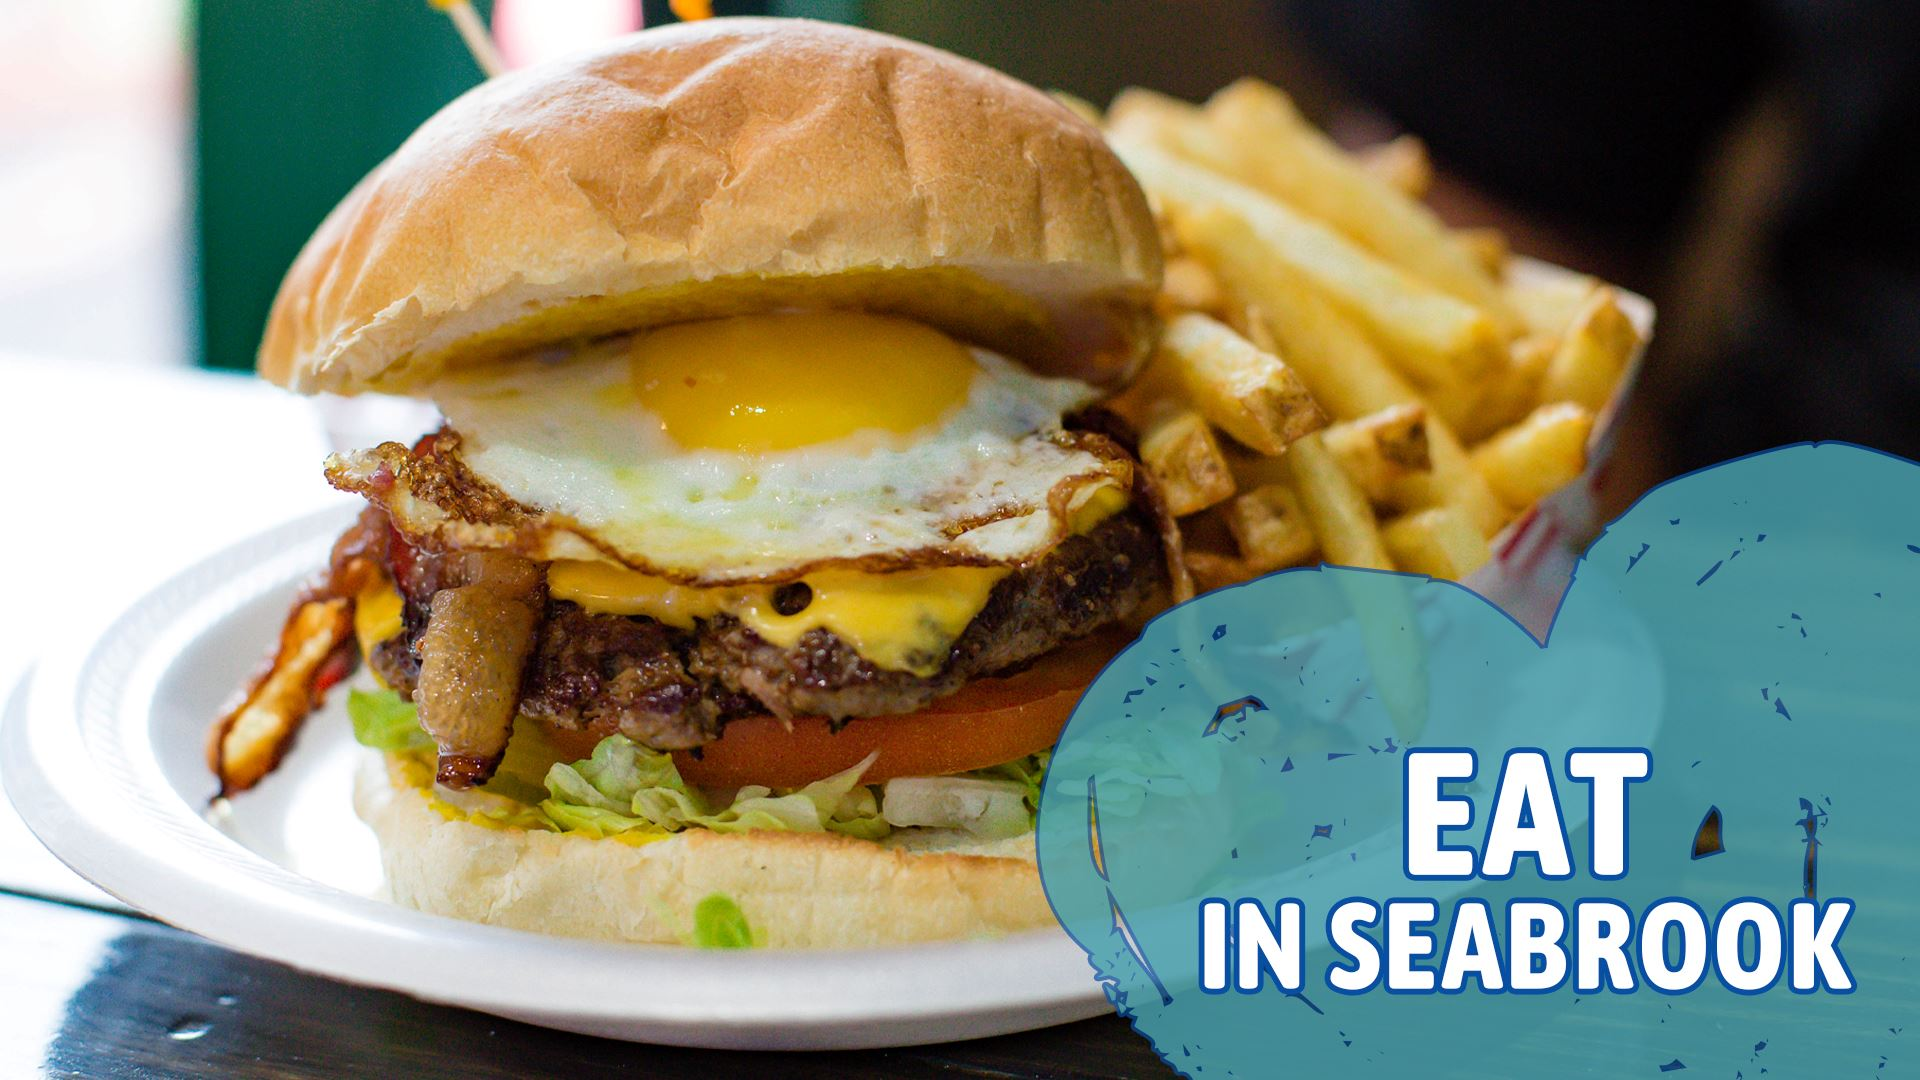 Eat in Seabrook